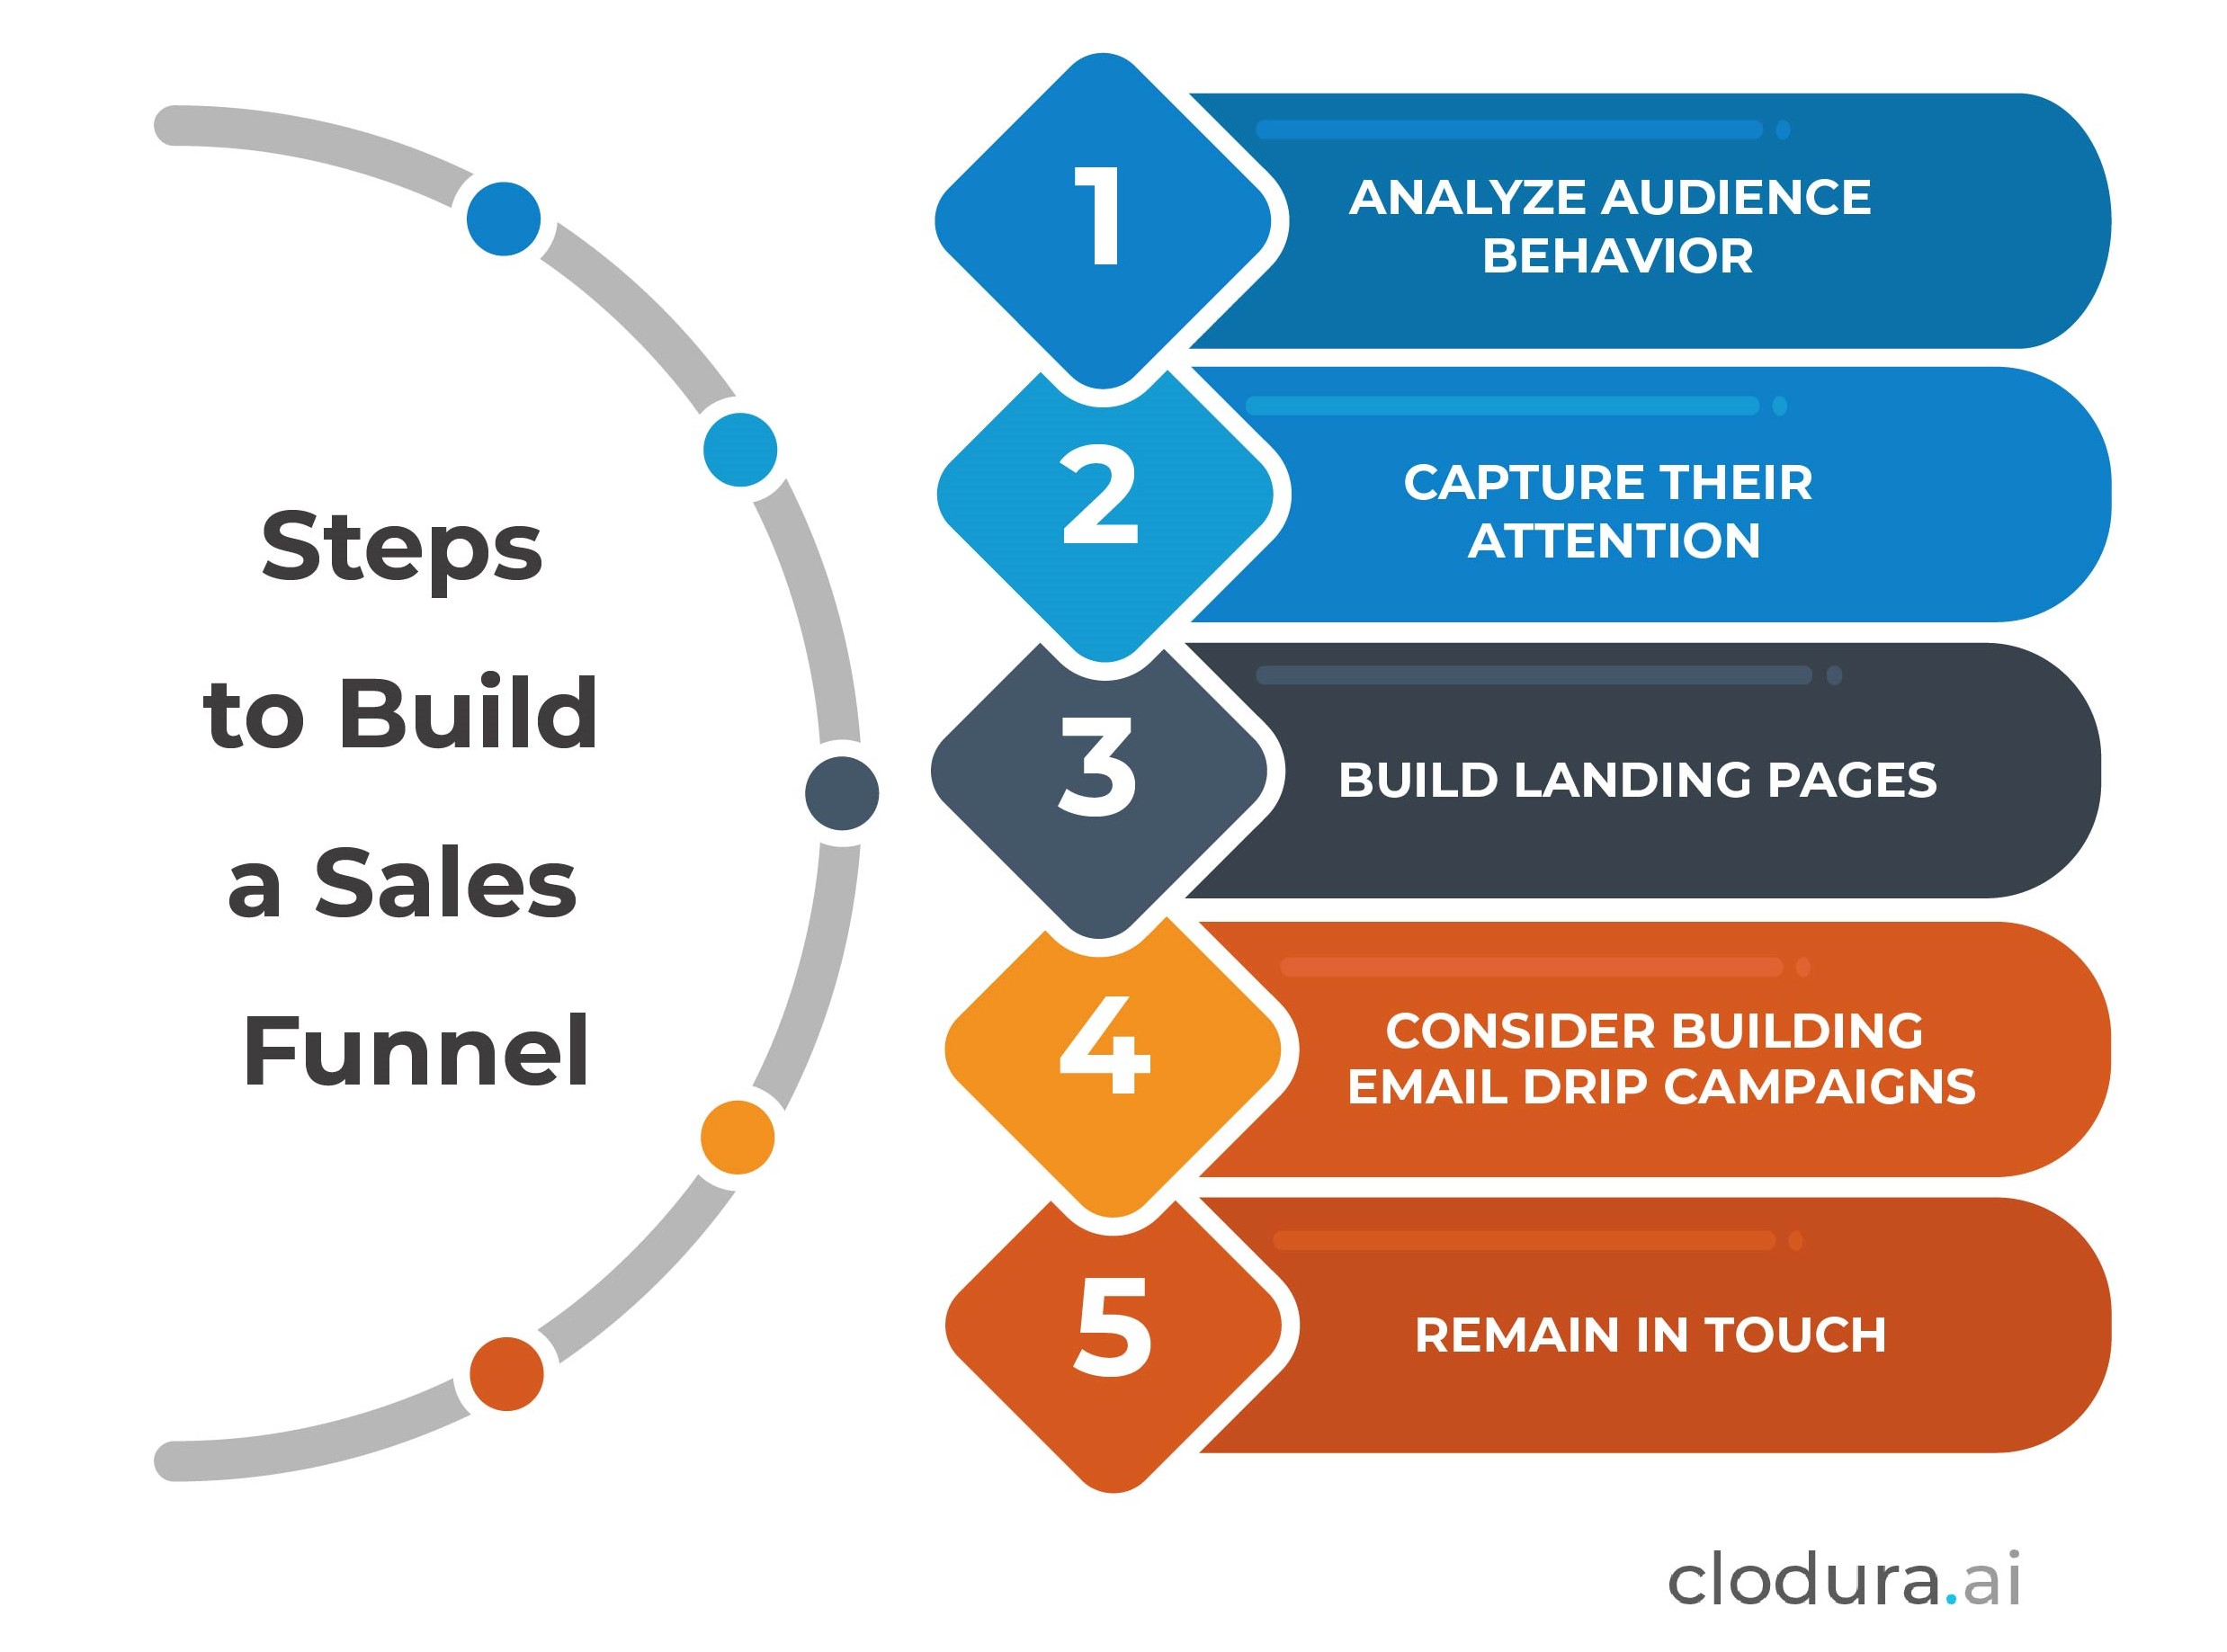 Steps of a Sales Funnel